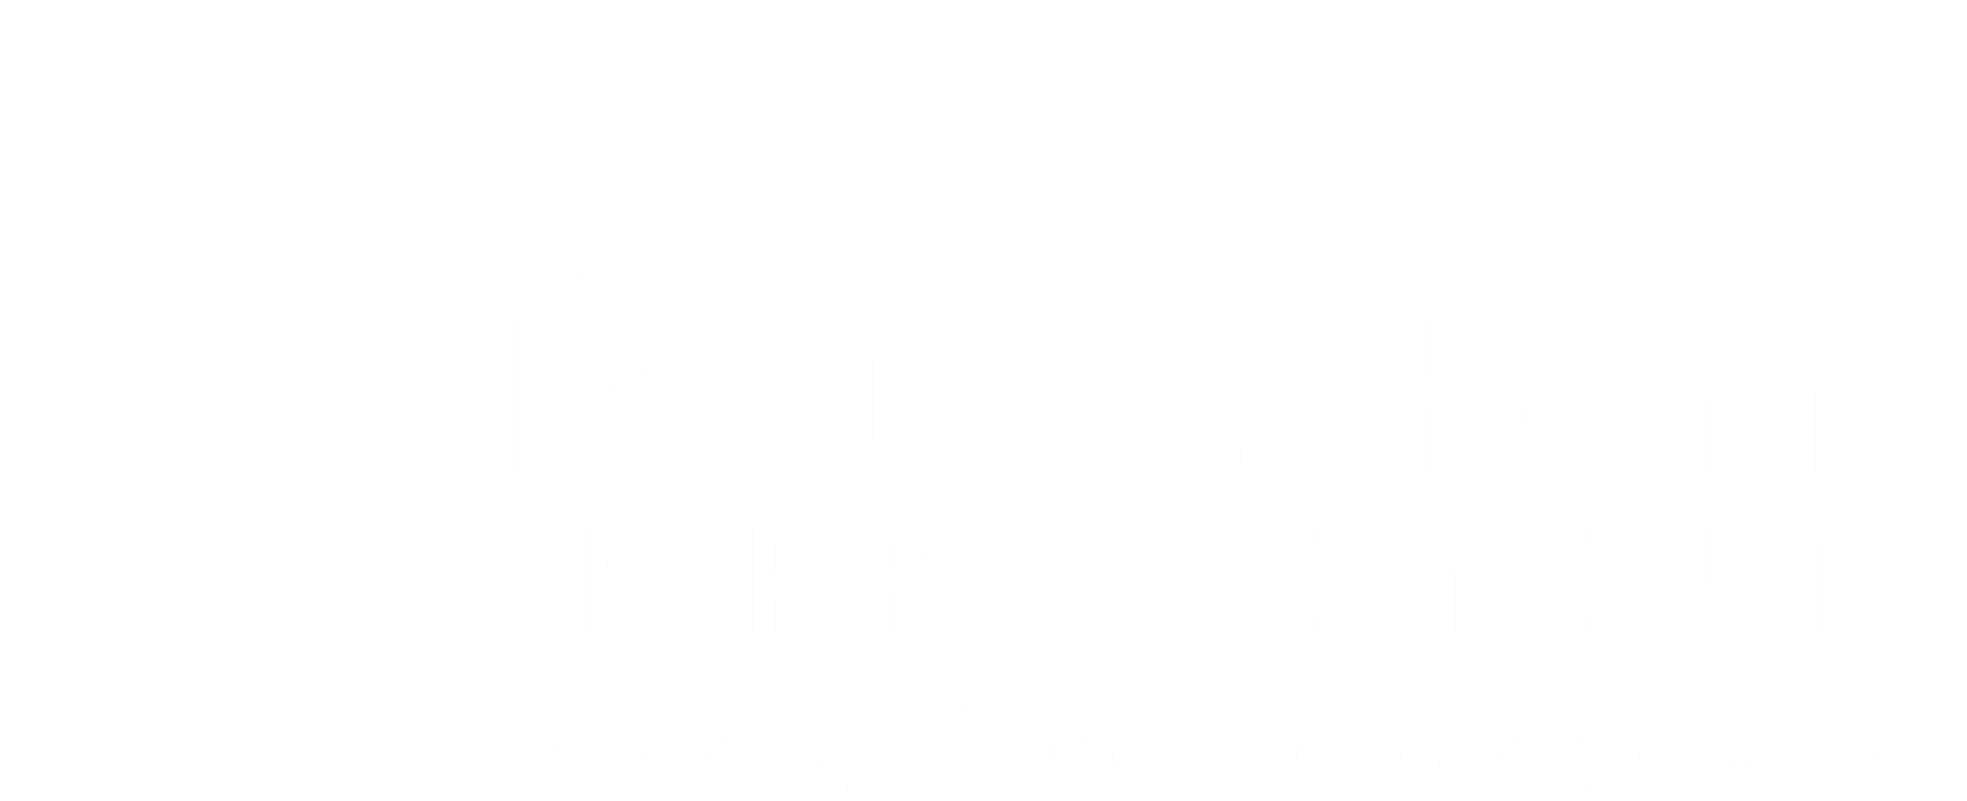 Deluxe Home Improvements white